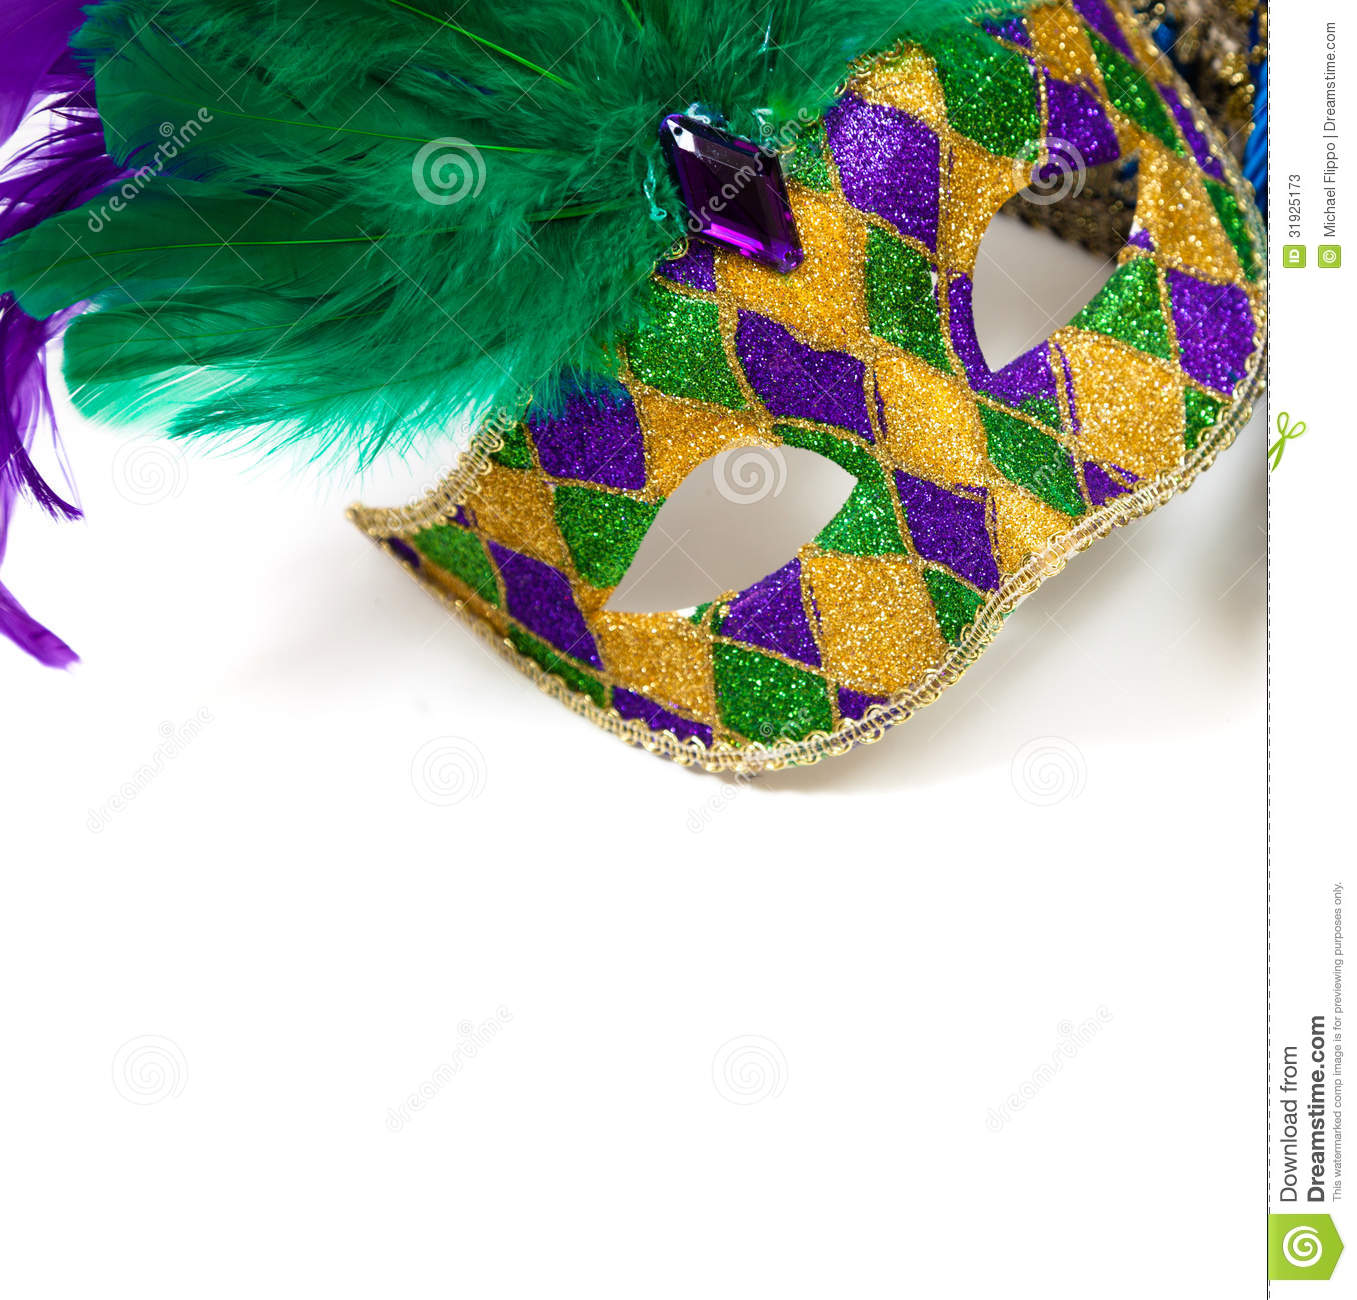 Mardi Gras Colors Background Mardi gras mask on a white